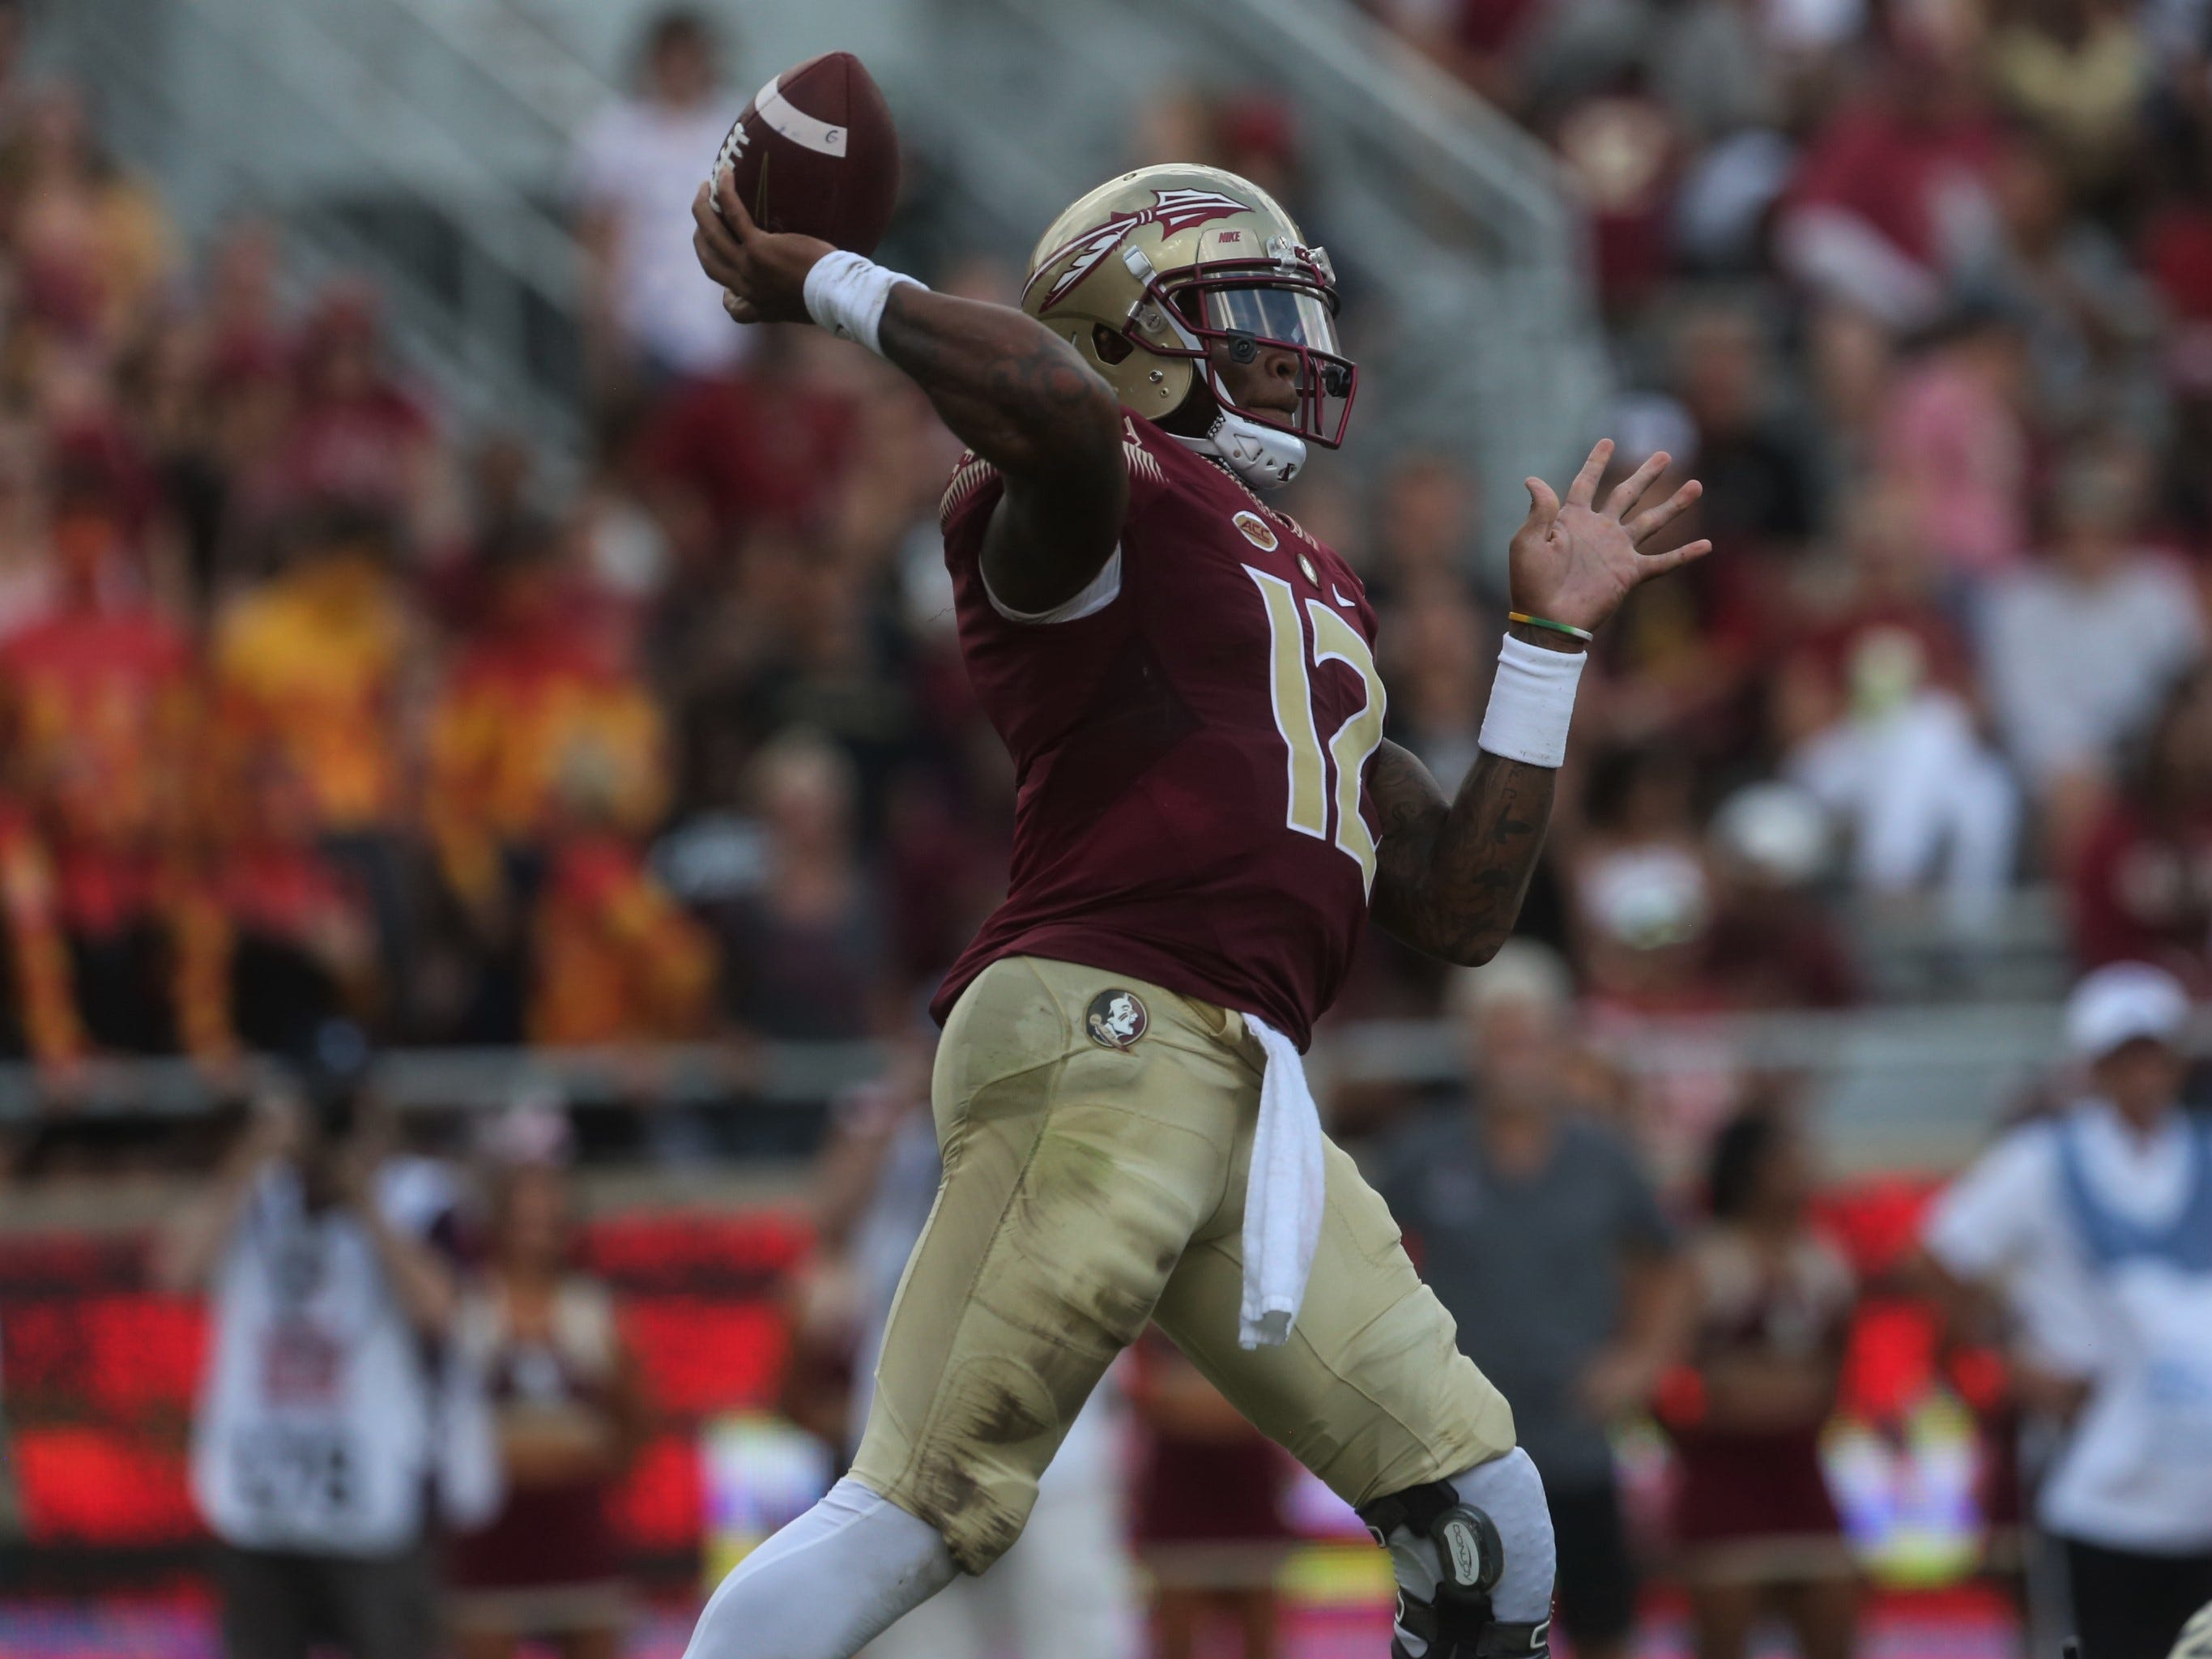 Florida State quarterback Deondre Francois drops back to pass during a game against Wake Forest at Doak Campbell Stadium on Saturday, Oct. 20, 2018.